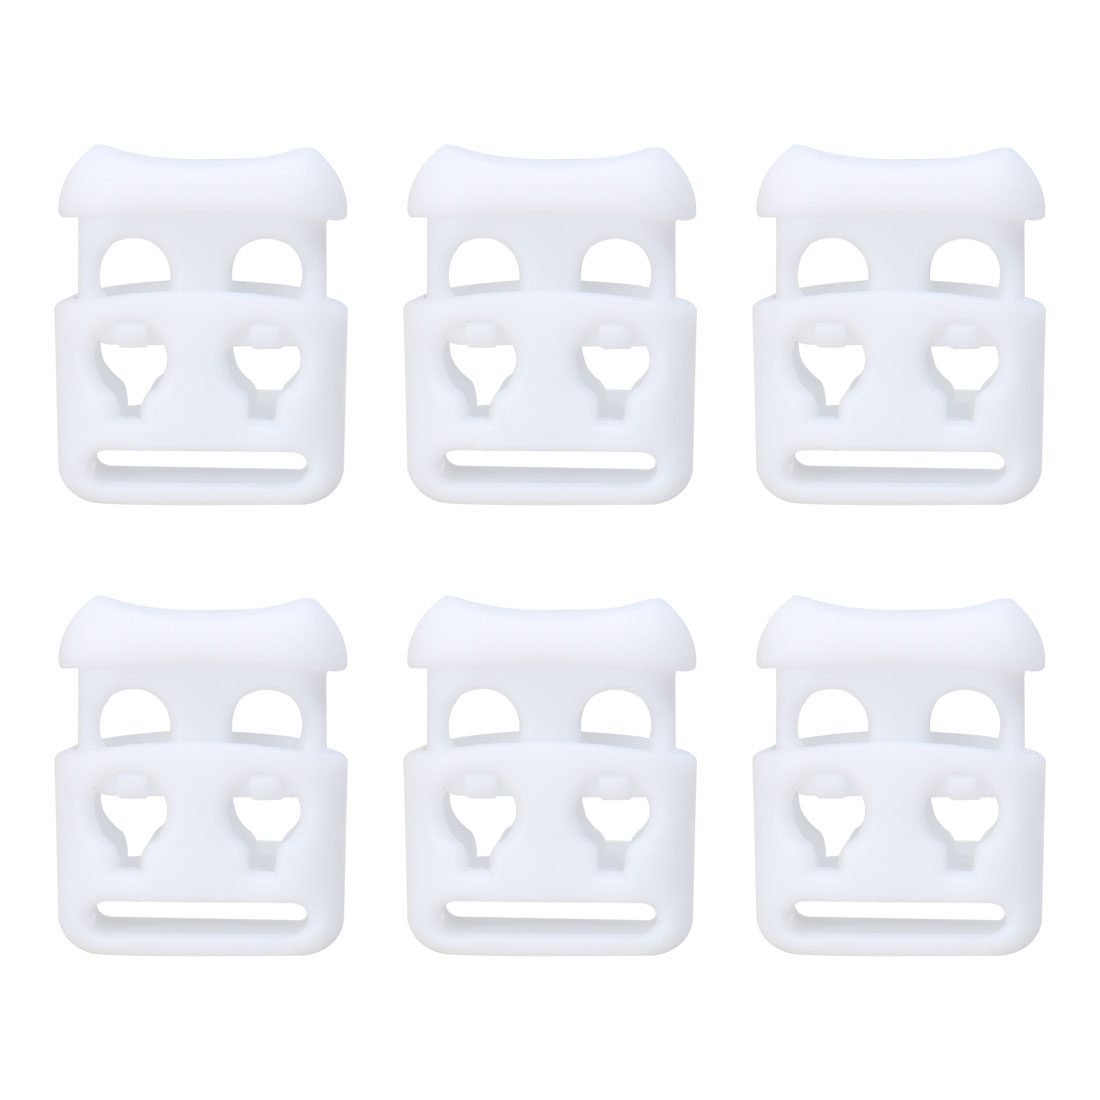 6pcs Plastic Cord Lock Stoppers End Spring Toggle Fasteners Organizer White